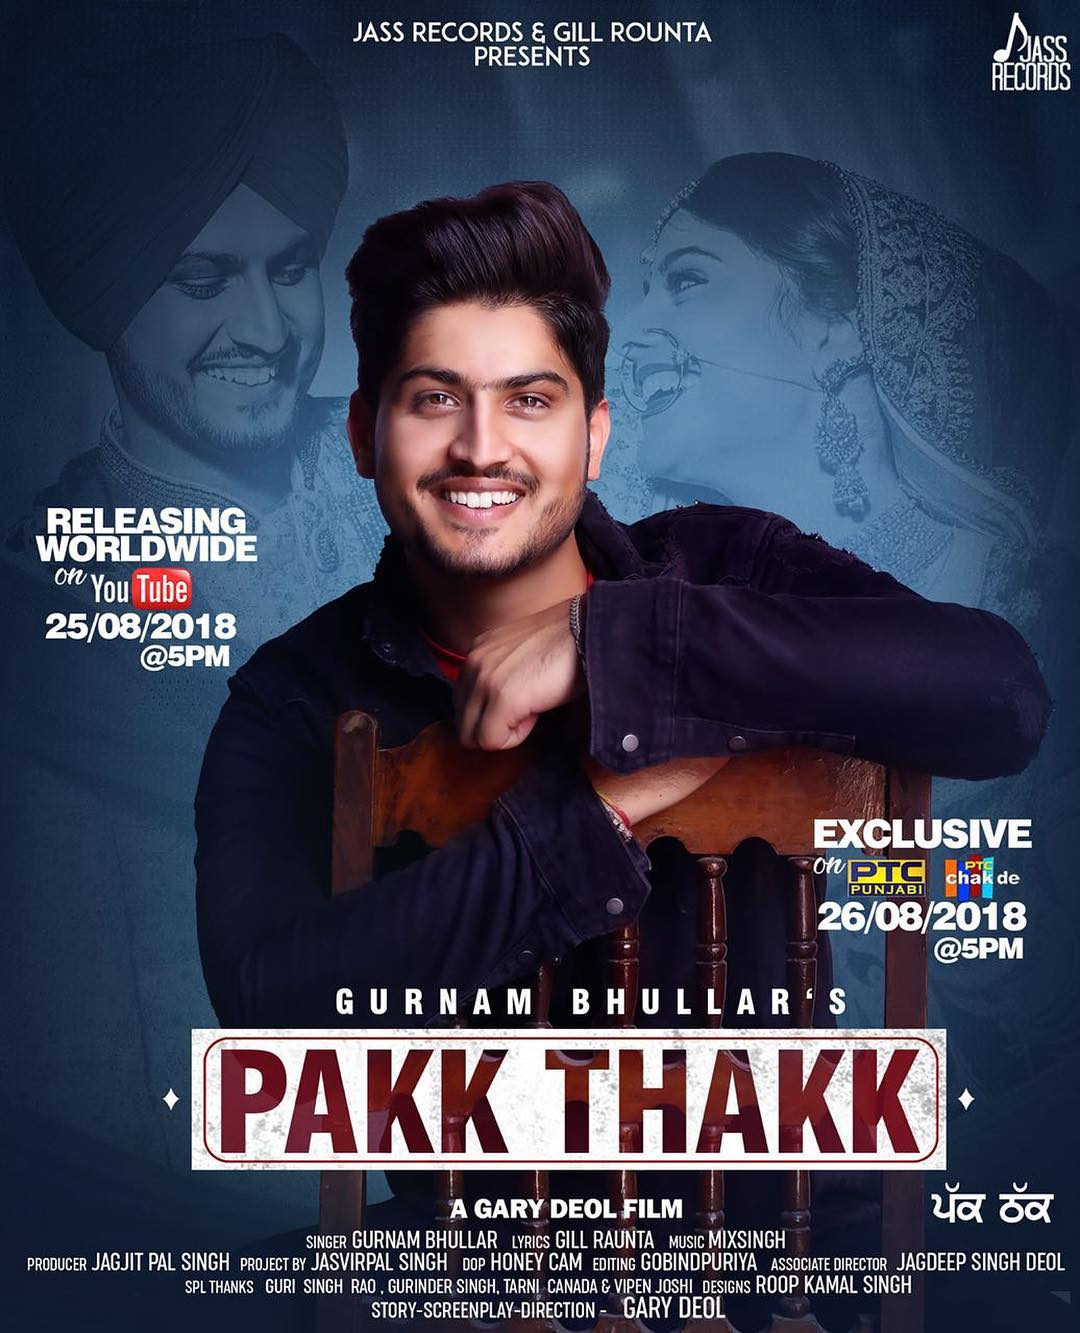 Lai La Lai Mp3 Naa Song Downld: PAKK THAKK LYRICS & Download